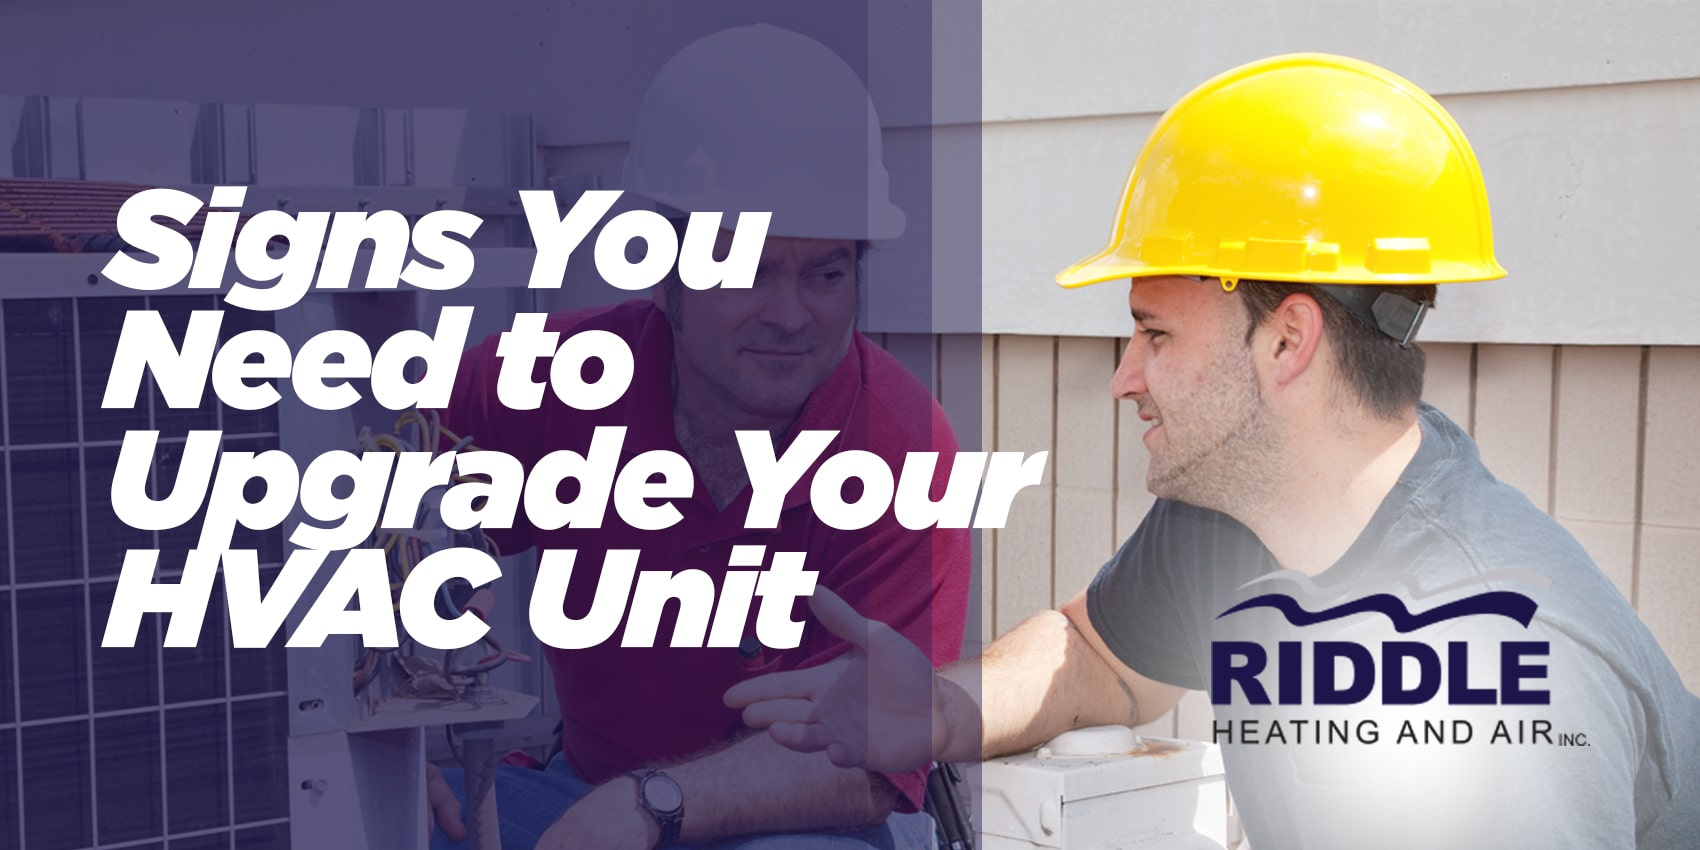 Signs You Need to Upgrade Your HVAC Unit